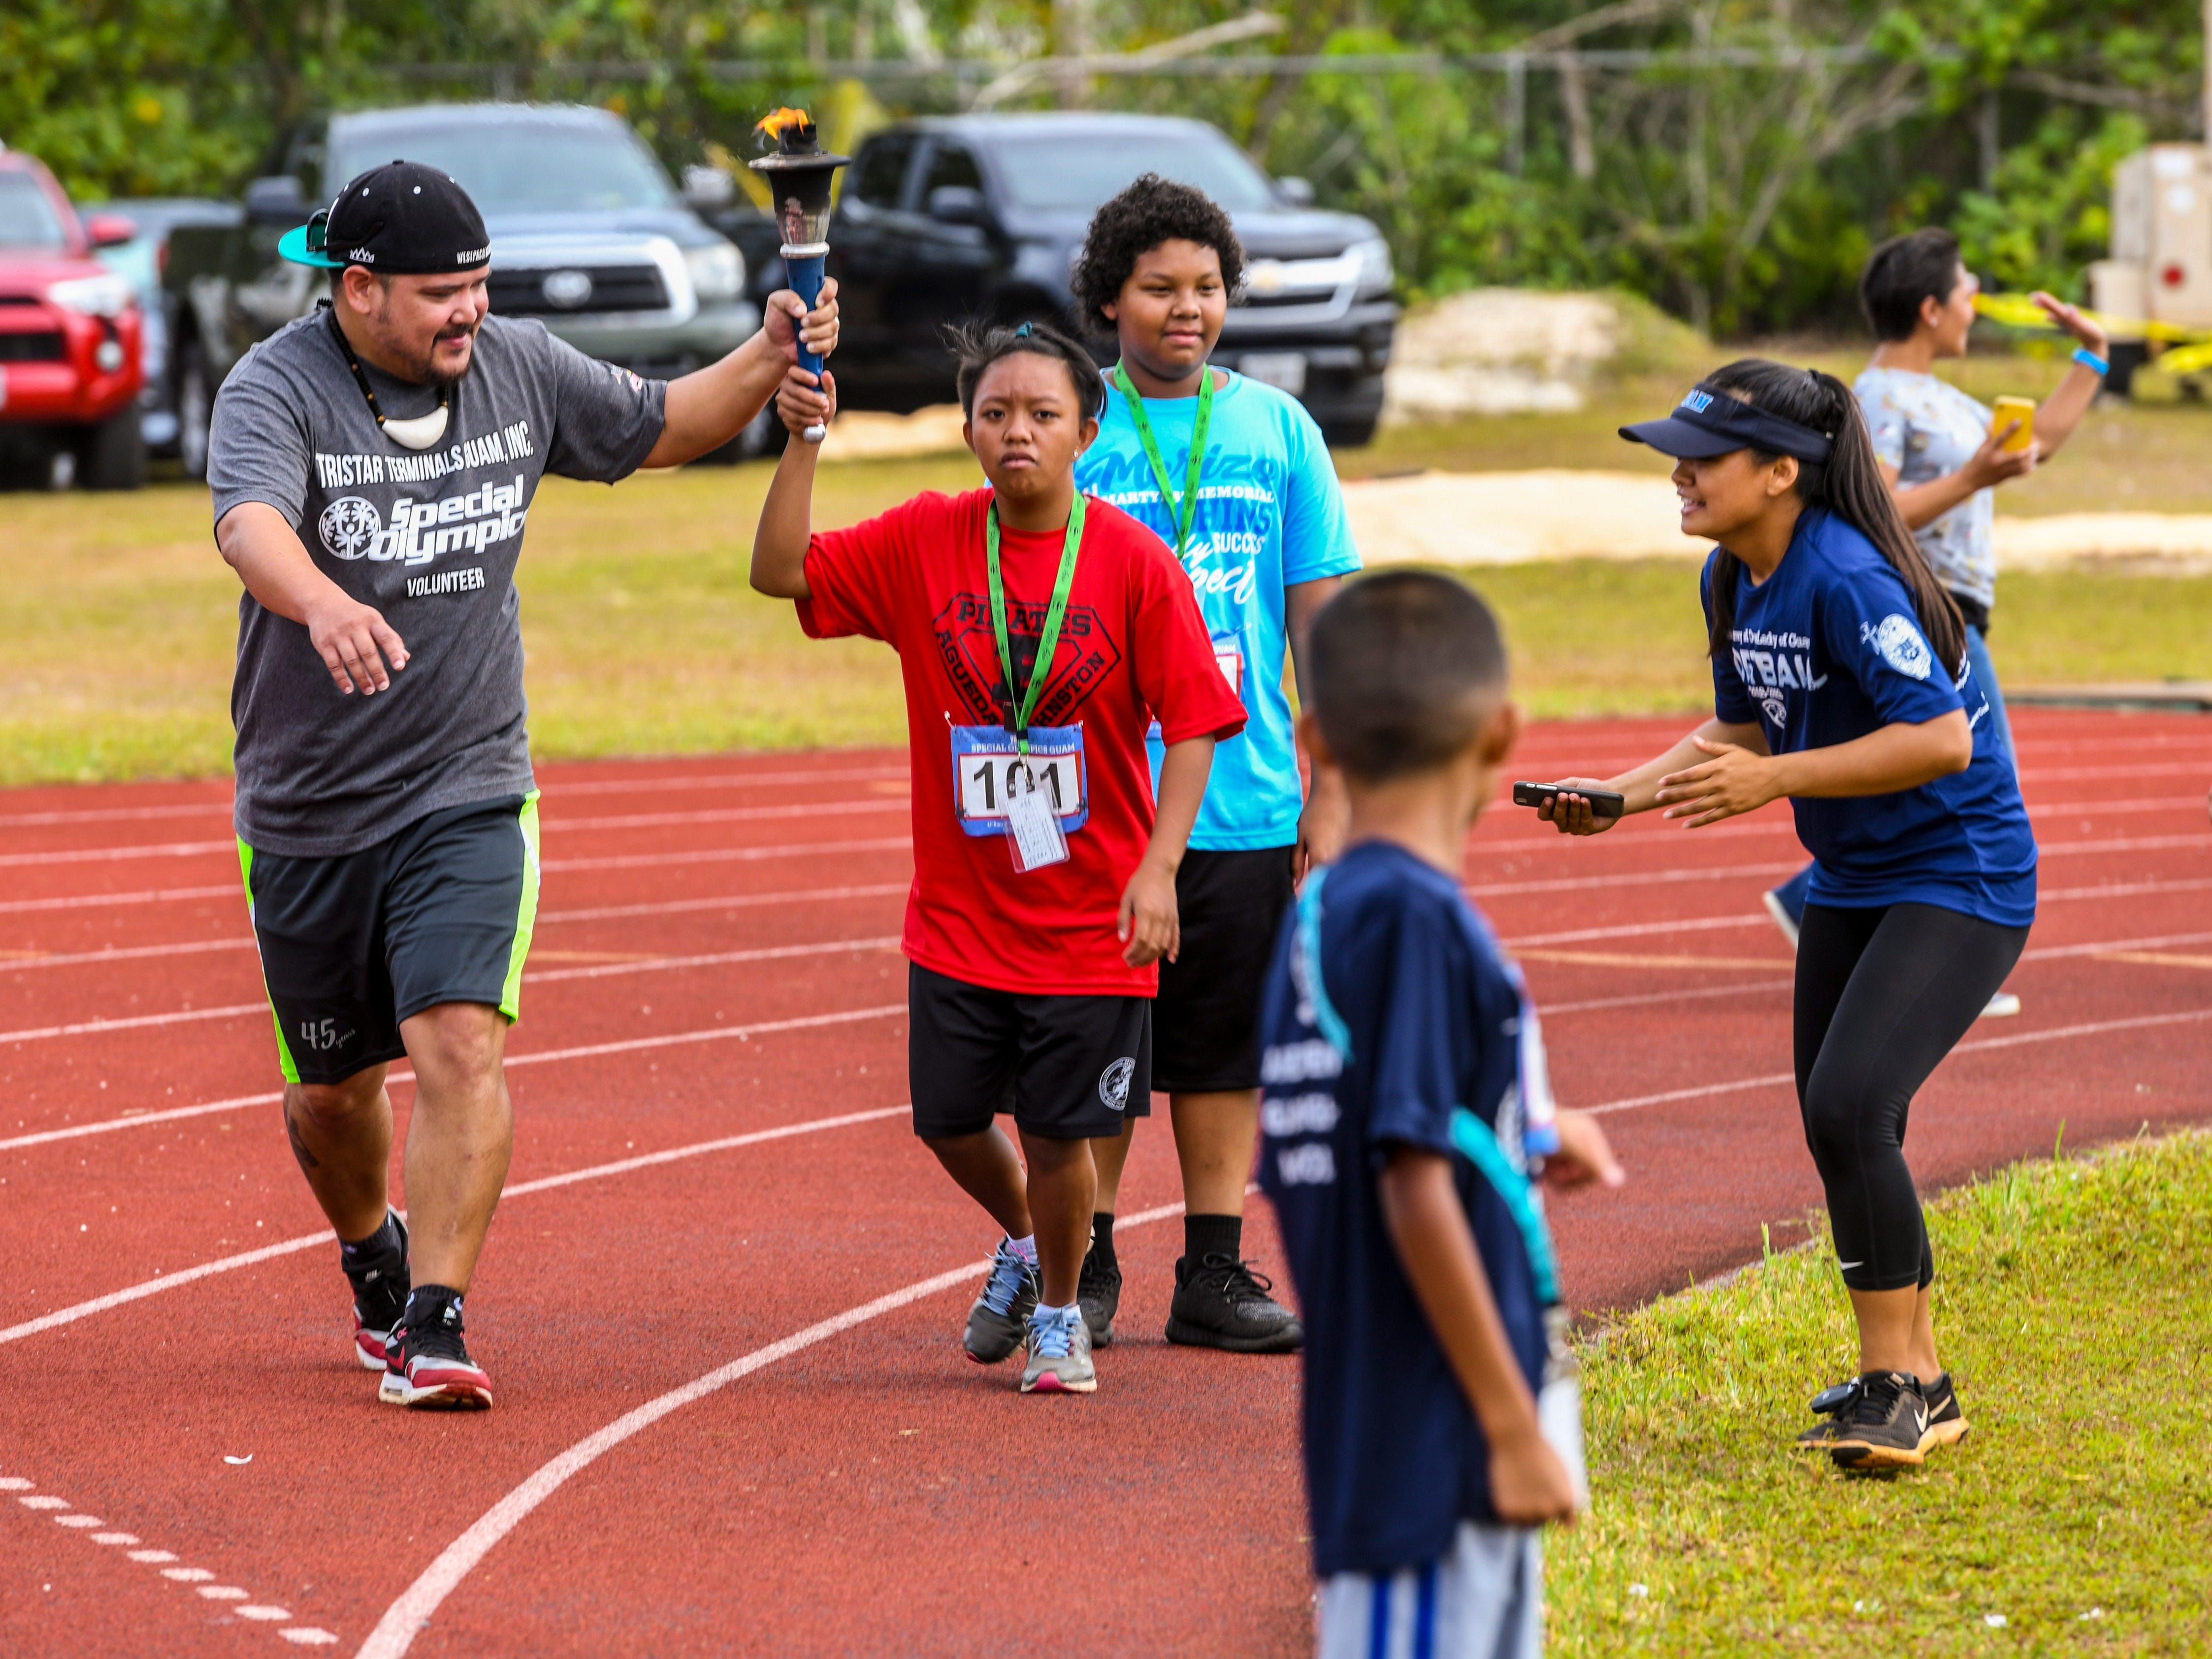 Special Olympian Angel Obra (101) carries the flame through her section of the track during the torch relay at the 43rd Special Olympics Guam Track & Field competition at Okkodo High School in Dededo on Saturday, March 16, 2019.